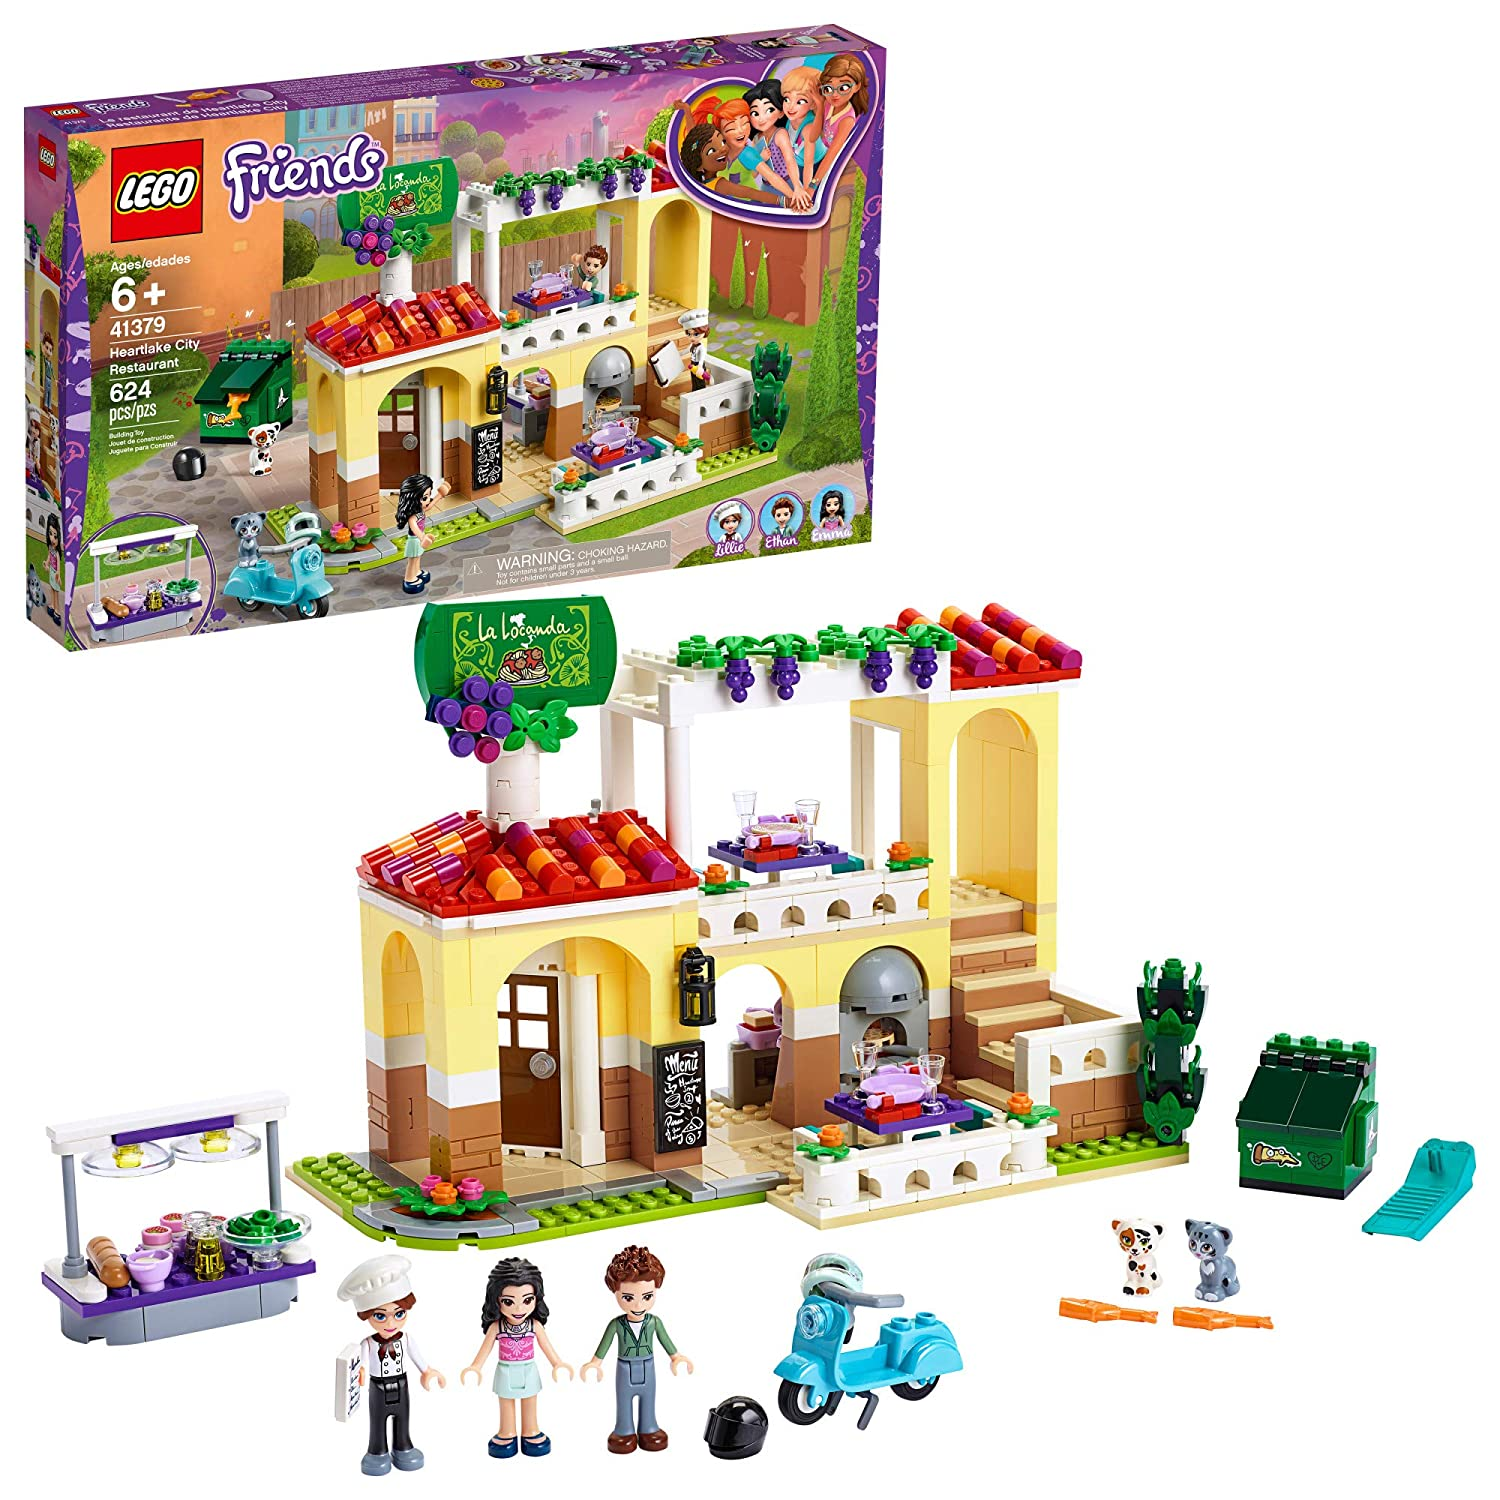 Amazon.com: LEGO Friends Heartlake City Restaurant 41379 ...